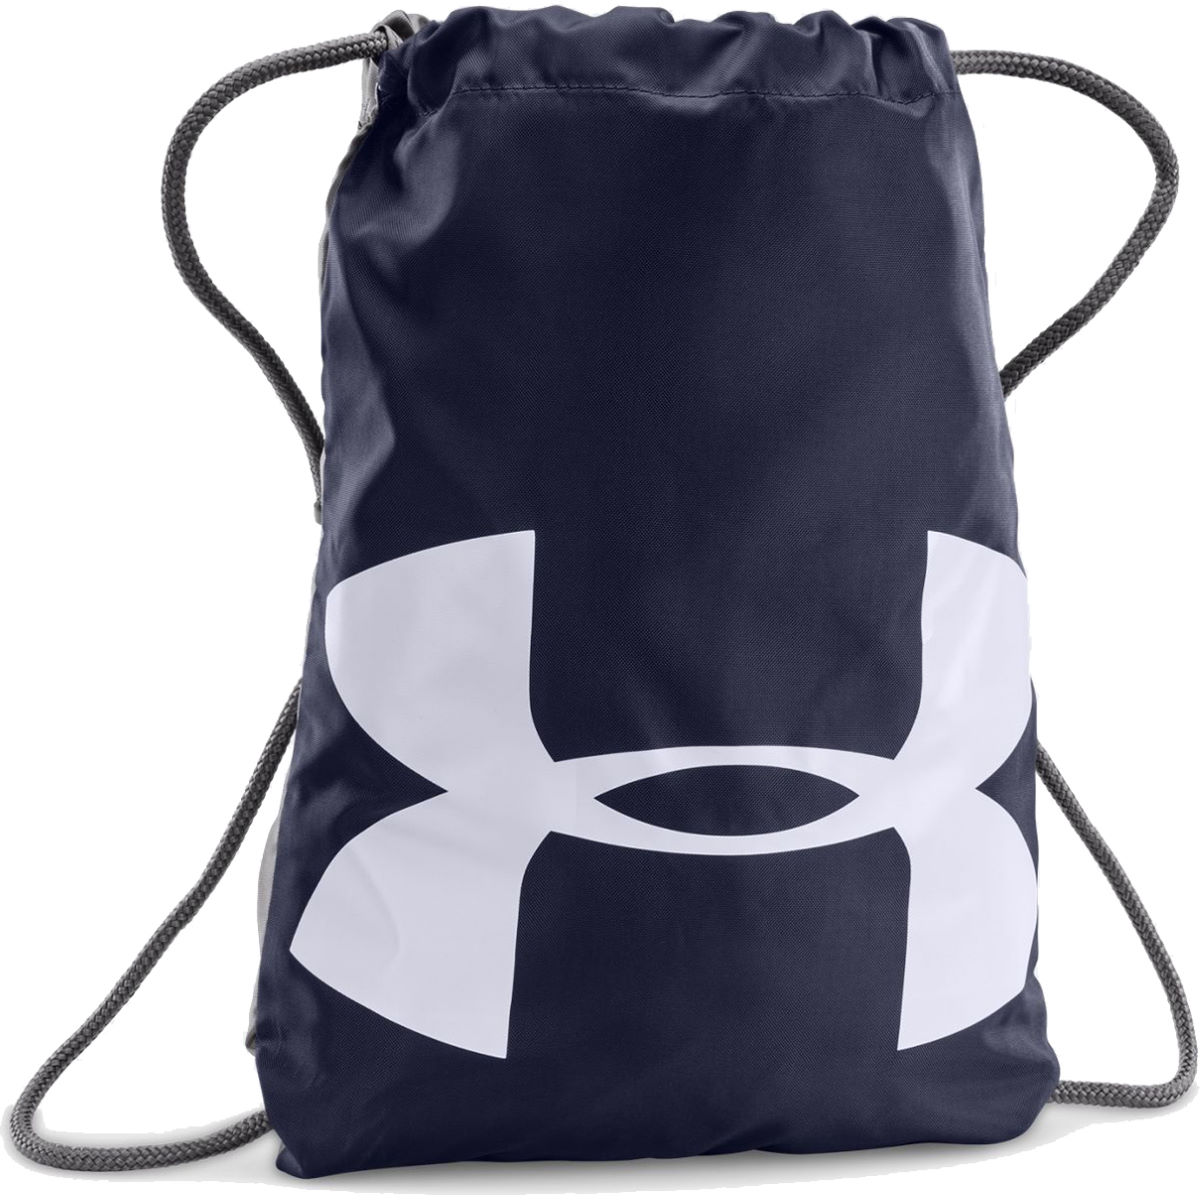 Under Armour Ozsee Sackpack   Swim Bags